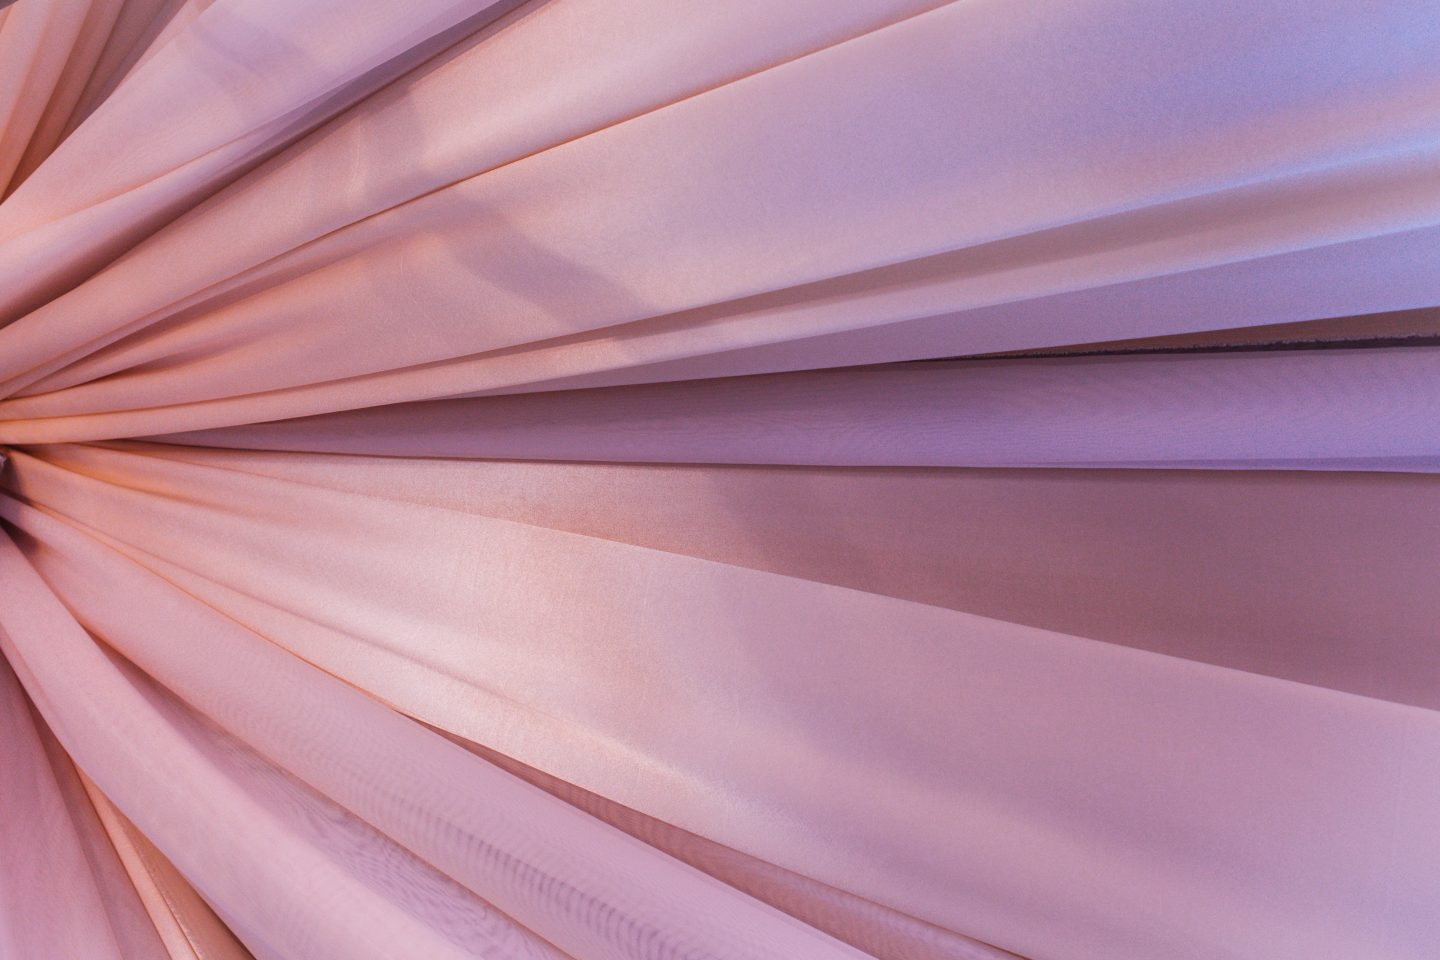 Curtain fabric in blush pink - what are the best textile and fabric related start ups